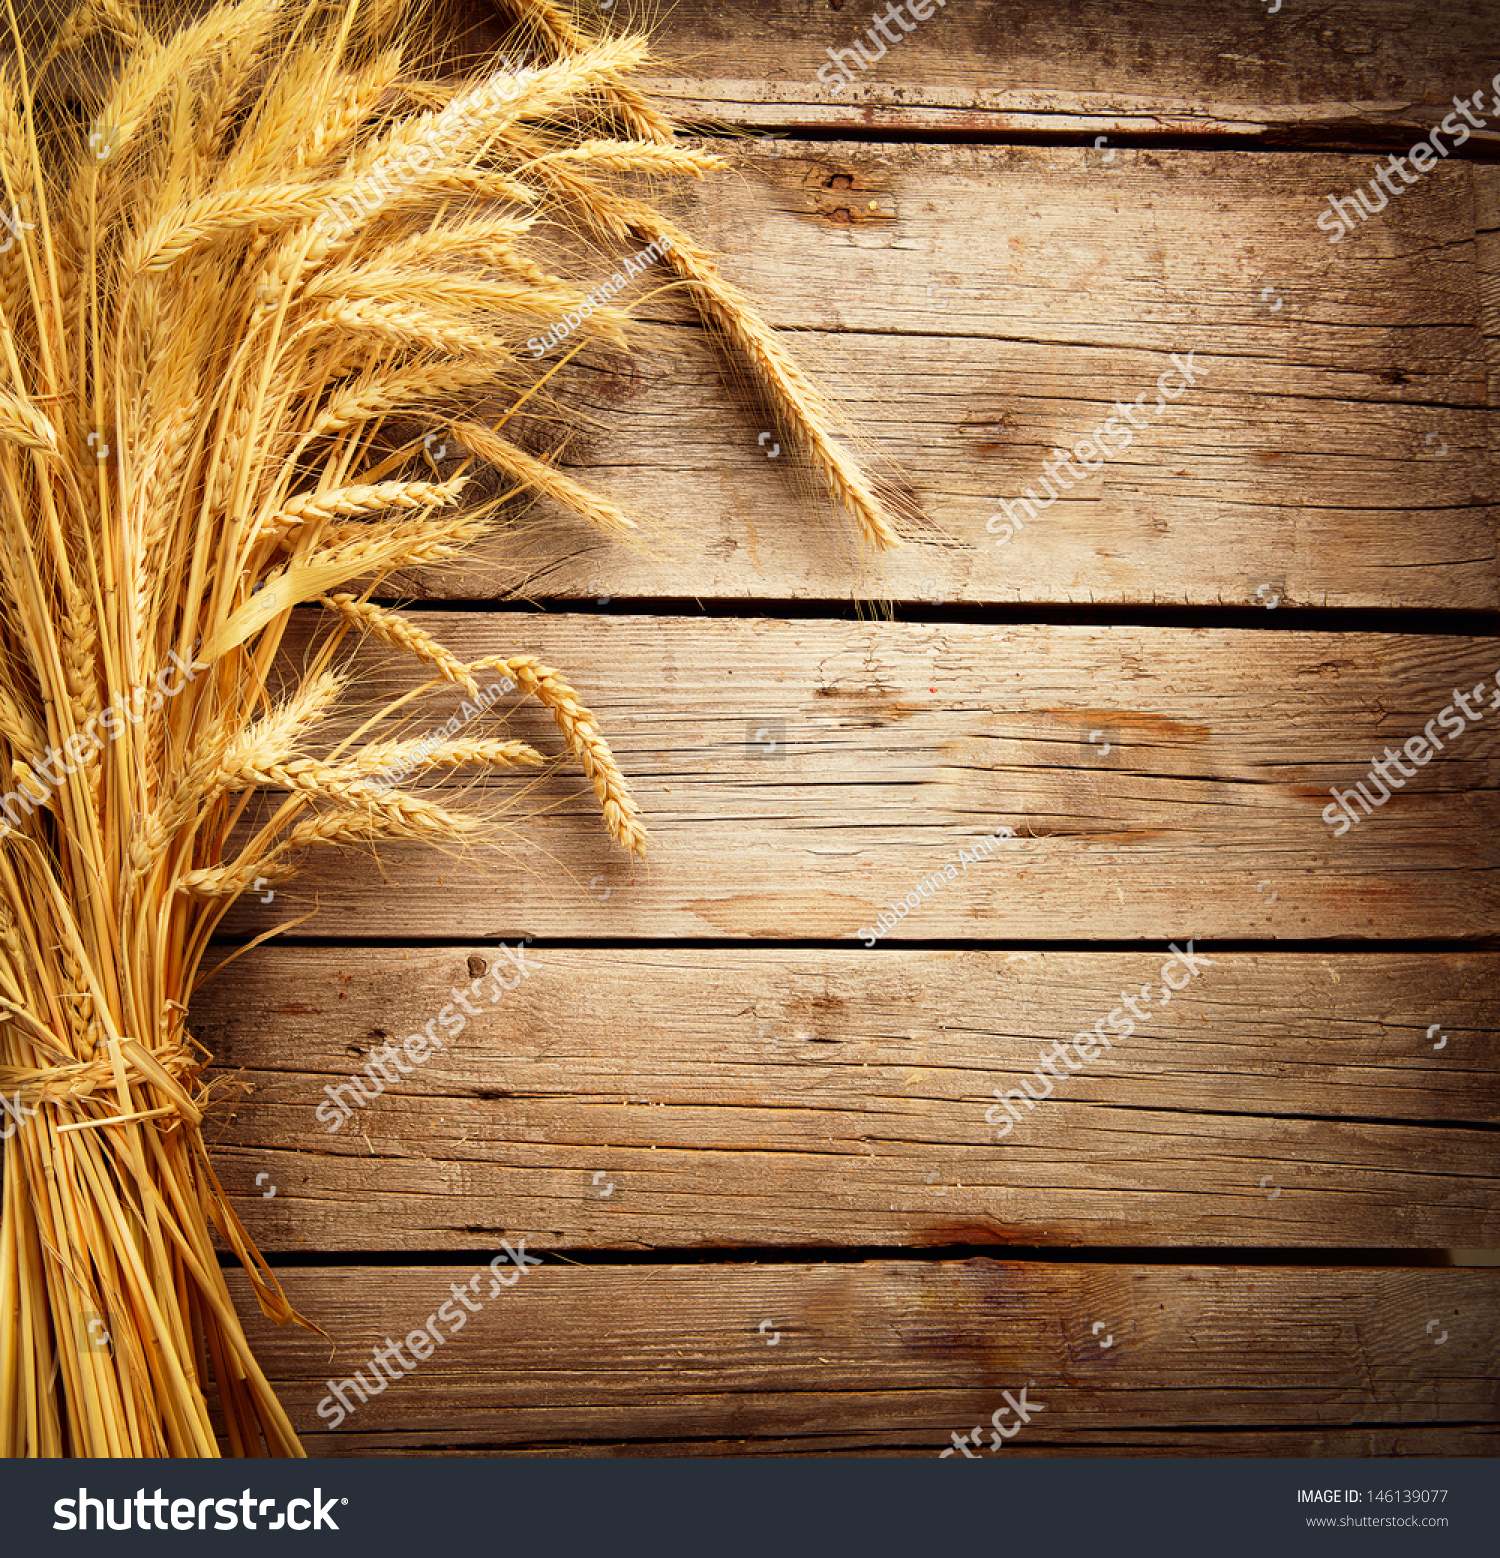 Wheat ears on wooden table sheaf stock photo